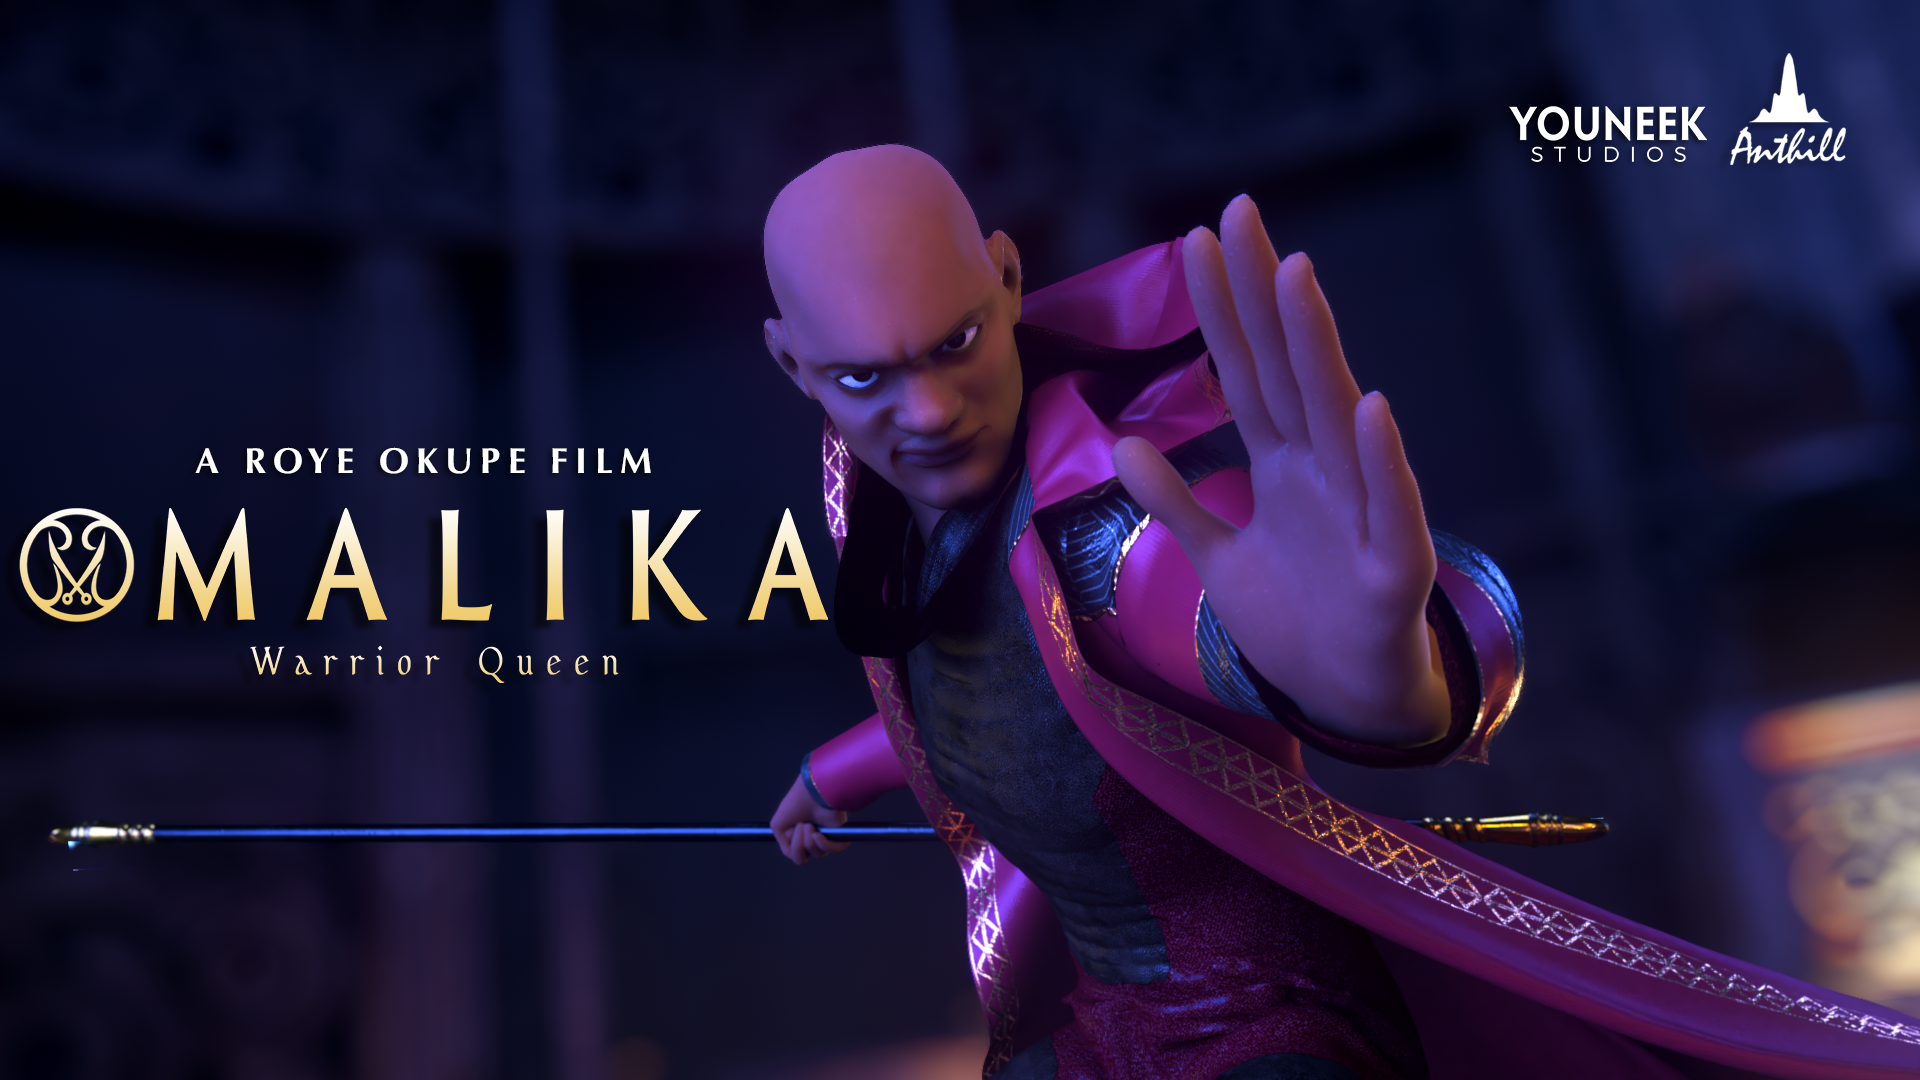 8 - From Comic Strip to Animation: Read Full Malika Story + Budget Details Exclusives